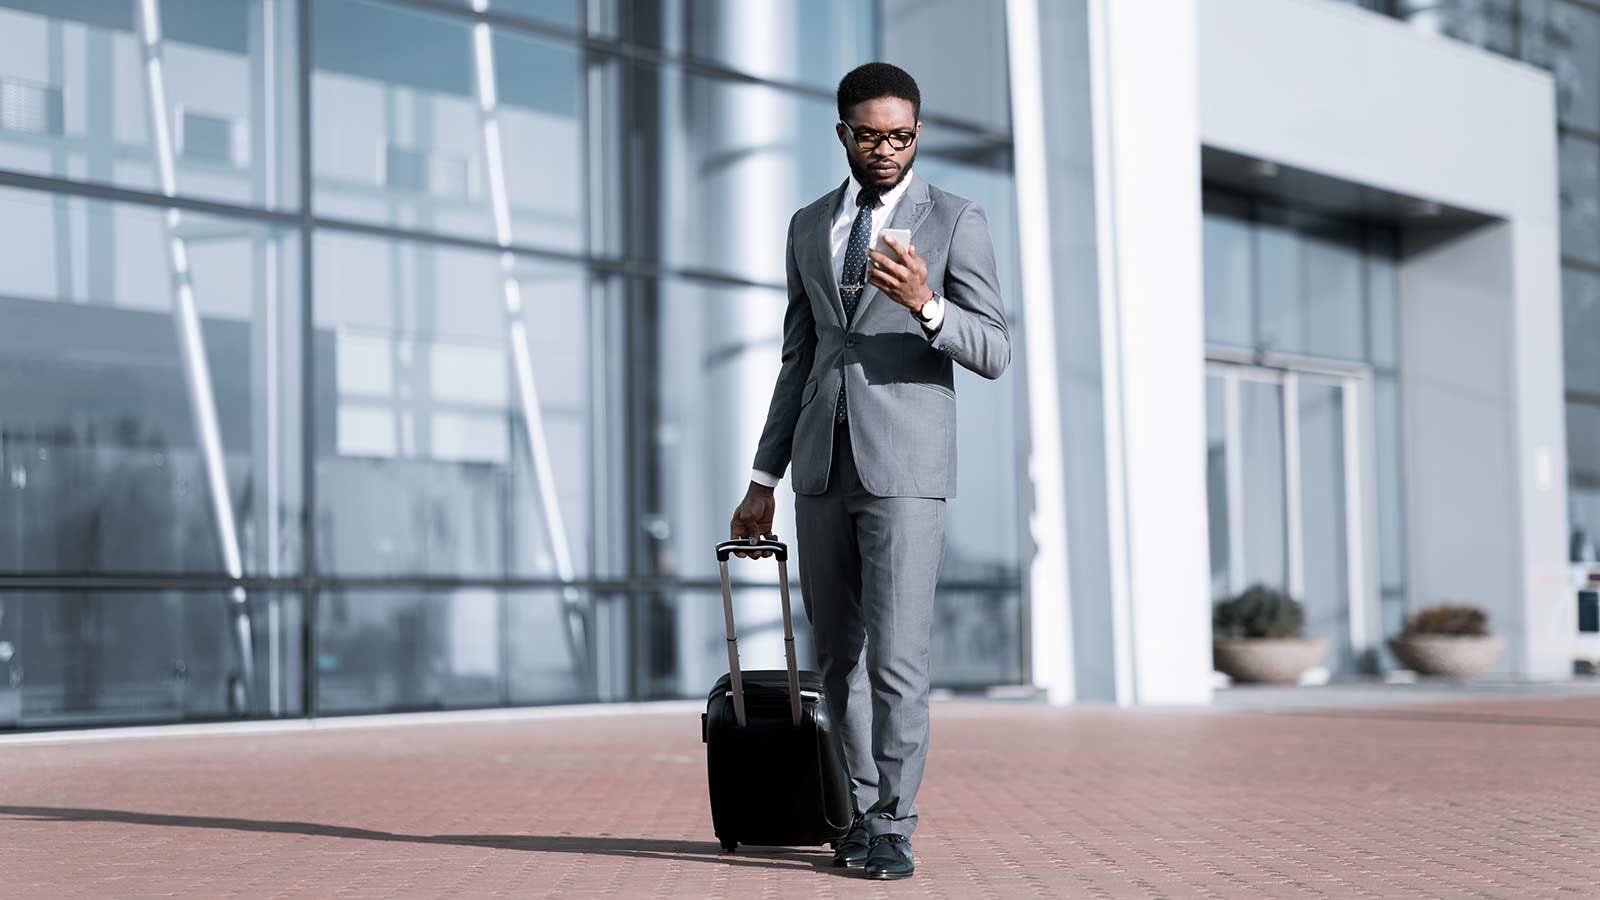 Business man walking in front of an airport while checking his phone